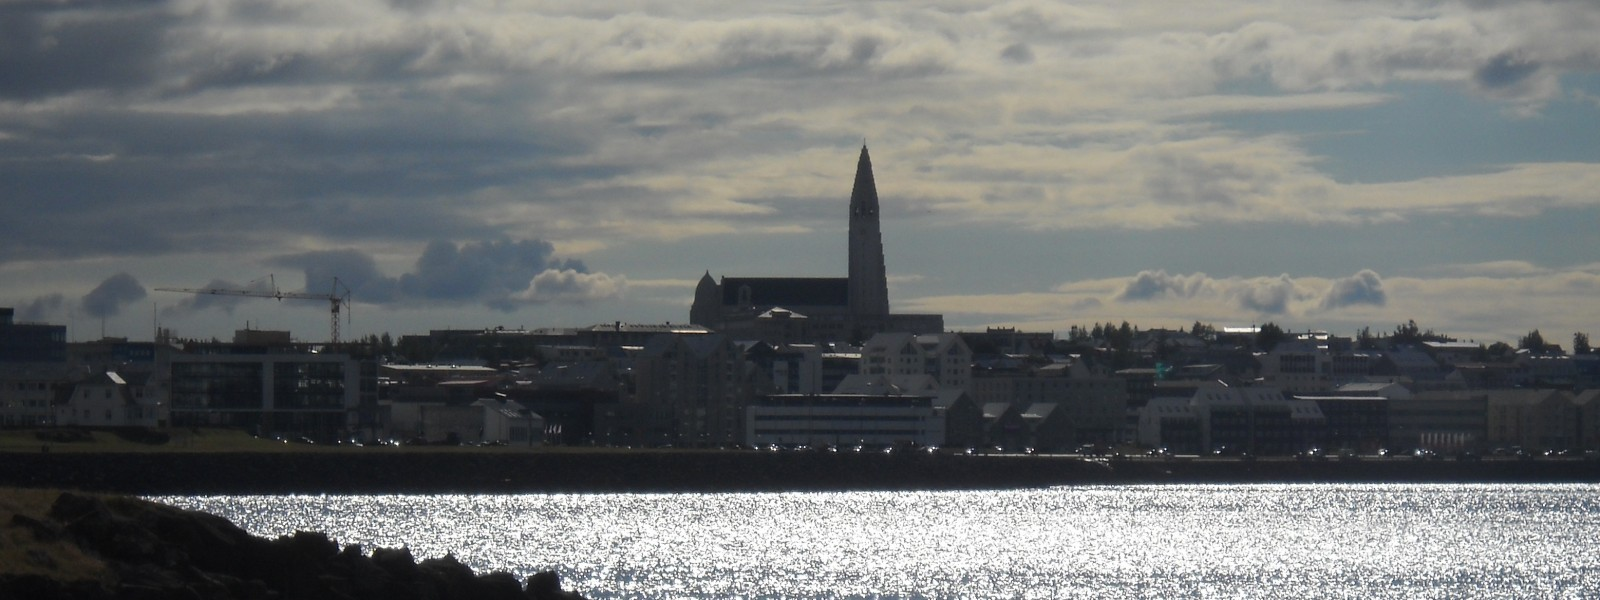 View of reykjavik and the church Hallgrimskirkja reaching to the sky